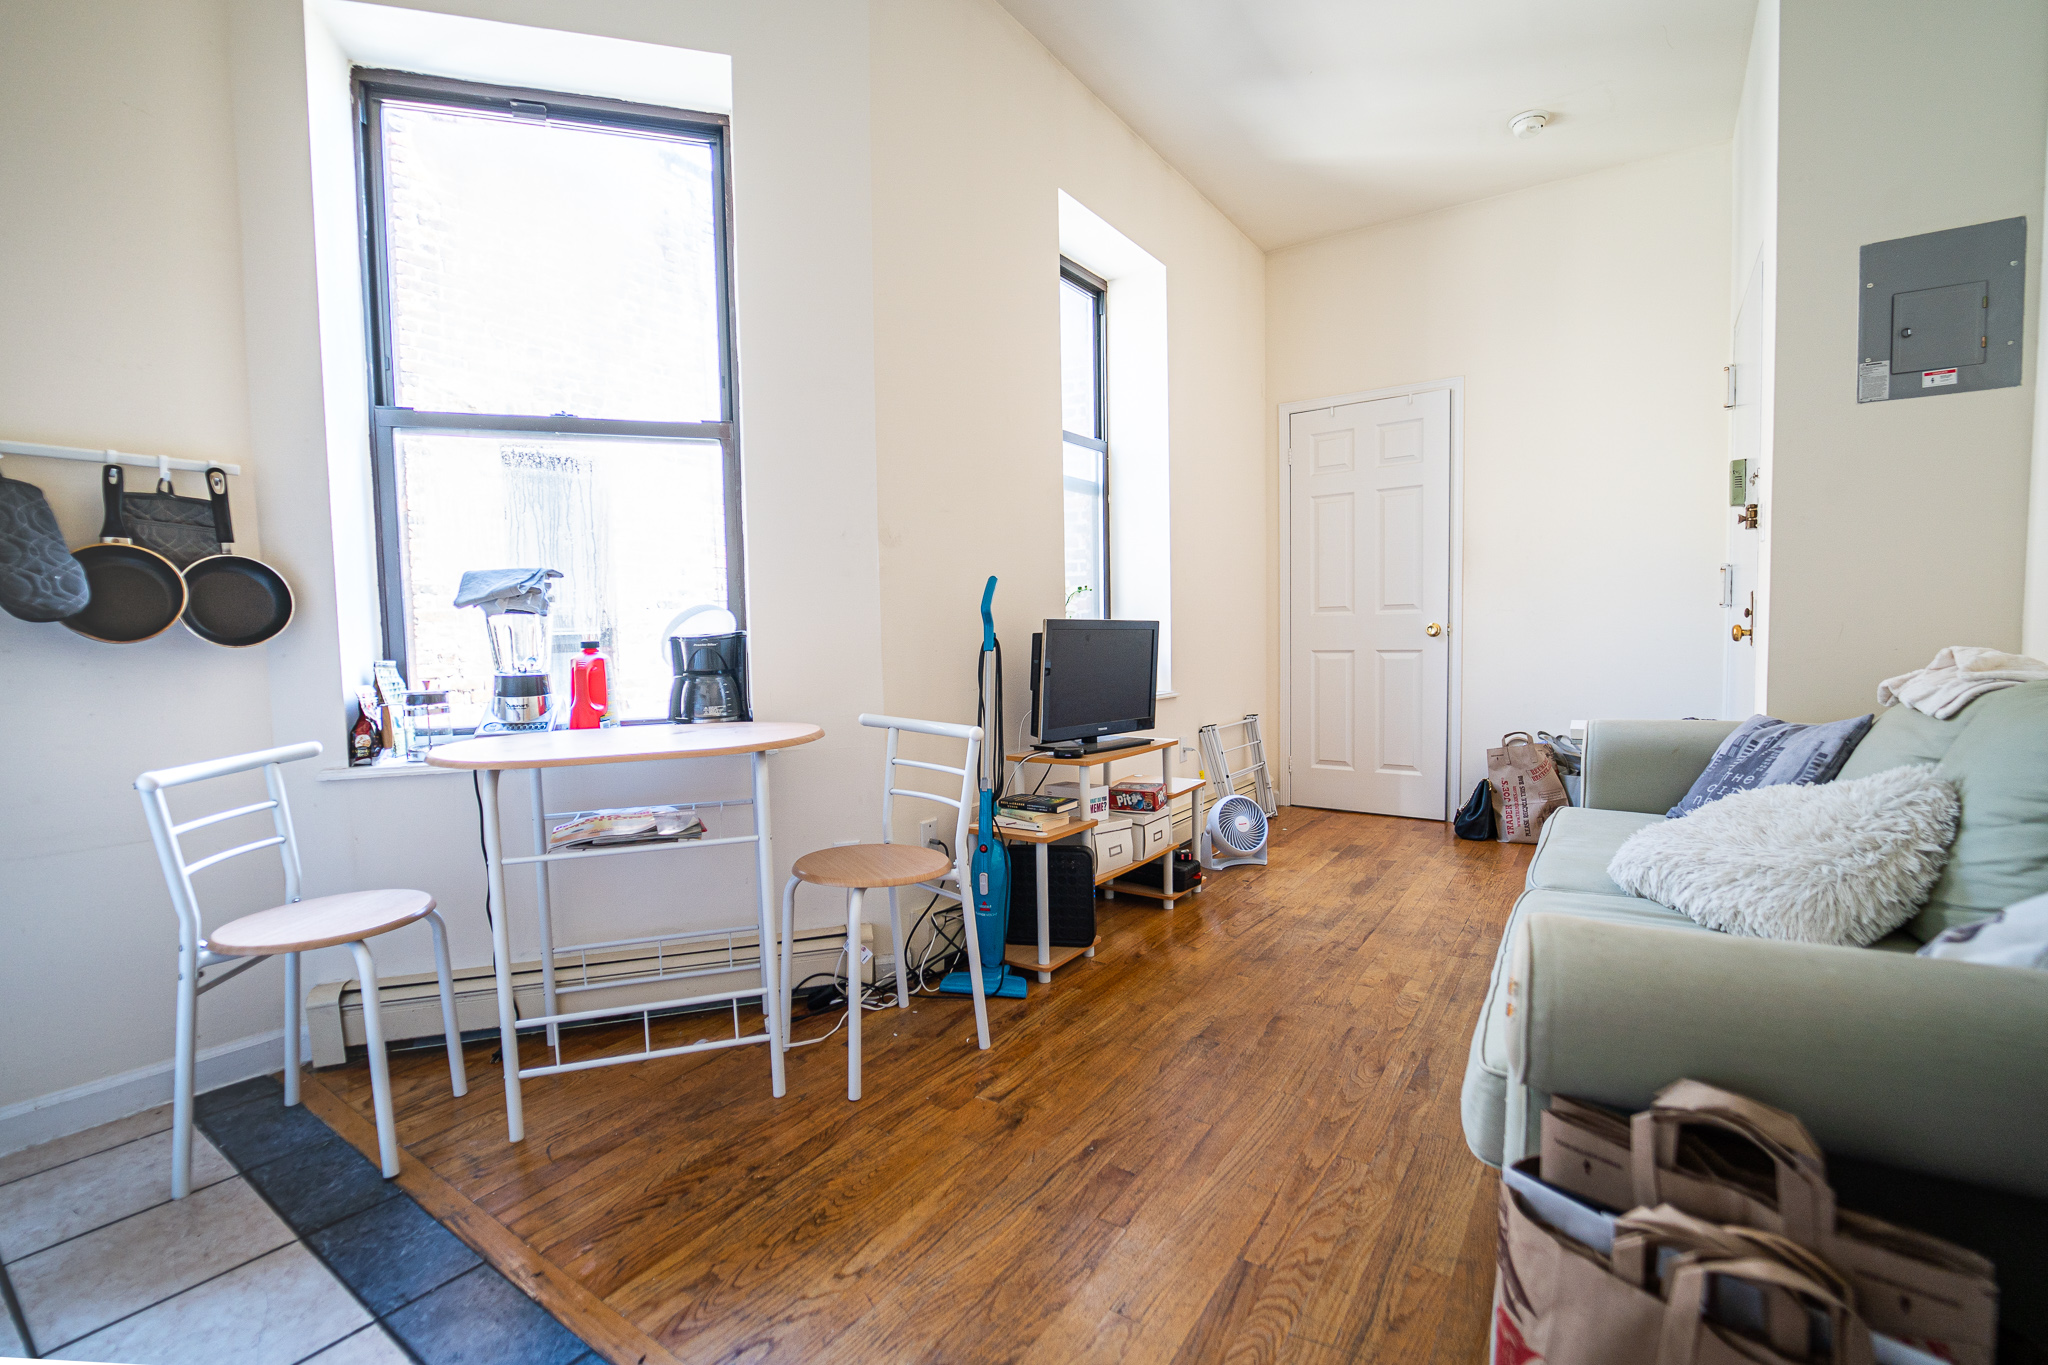 200 E 7 Street #6B - Sunny Two Bedroom in East Village! Enjoy the open kitchen that opens up to sunny living room, renovated bathroom and two separate bedrooms that can accommodate queen size bed. Located on a top floor of a walk up building, with laundry, on a tree line street in East Village, steps away from major restaurants, stores, entertainment, parks and several subway lines. Rent: $2,795 /monthTerms: 12 - 12 MonthsAvailable: August 7th, 2019